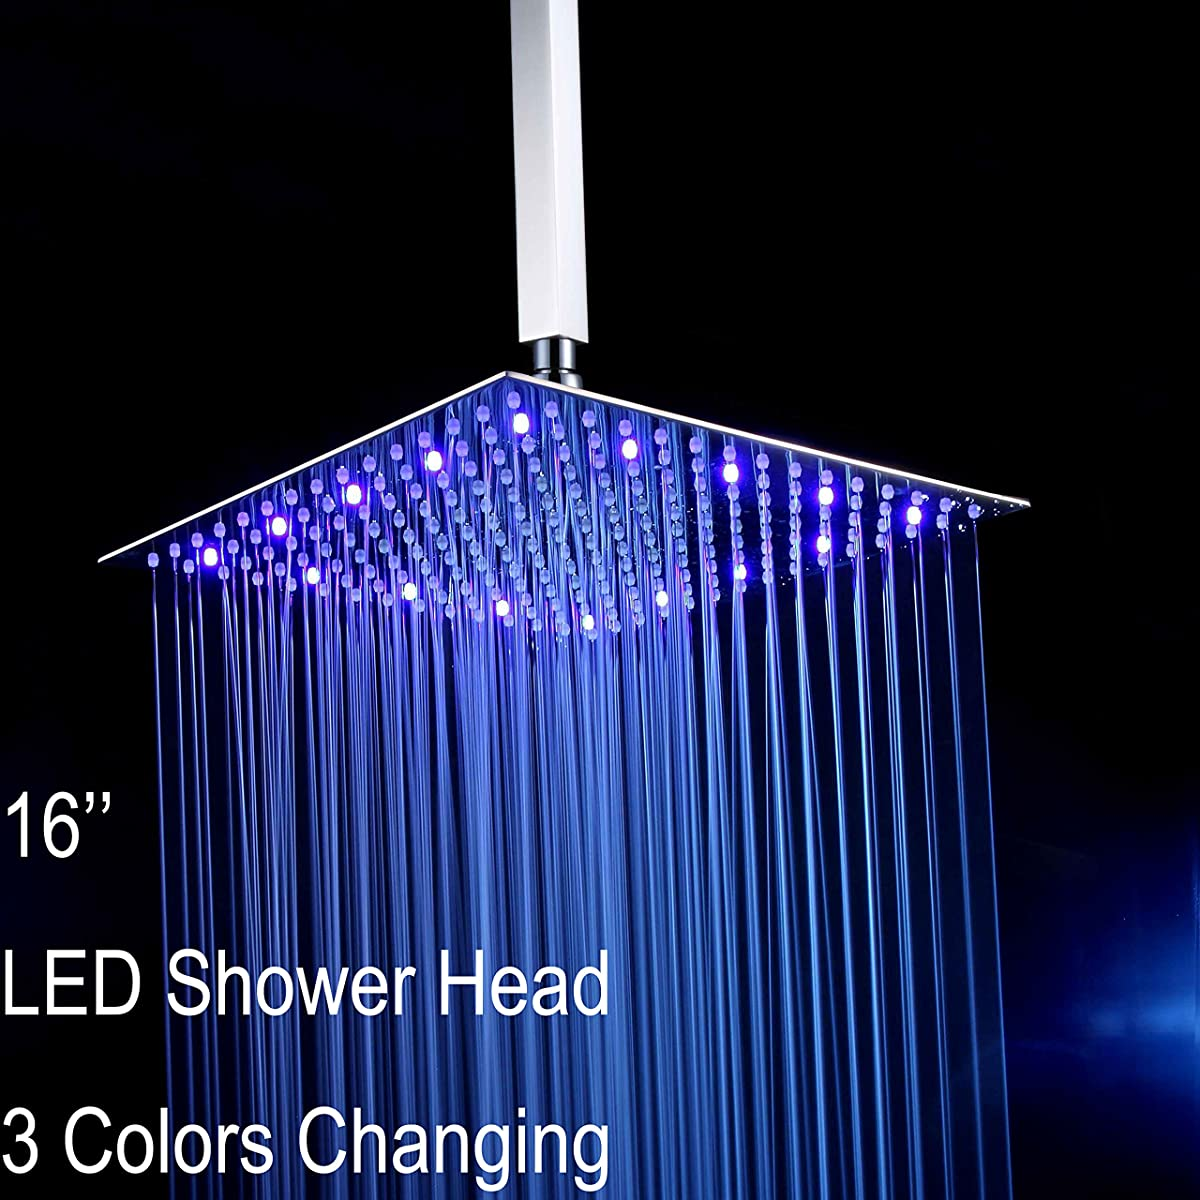 "Fyeer 16"" Ultra-thin Ceiling Mounted Square LED Fixed Rainfall Shower Head (Shower Arm Not Included), 3-LAYER Brushed Nickel 304 Stainless Steel, Temperature Sensor 3 Colors Changing"